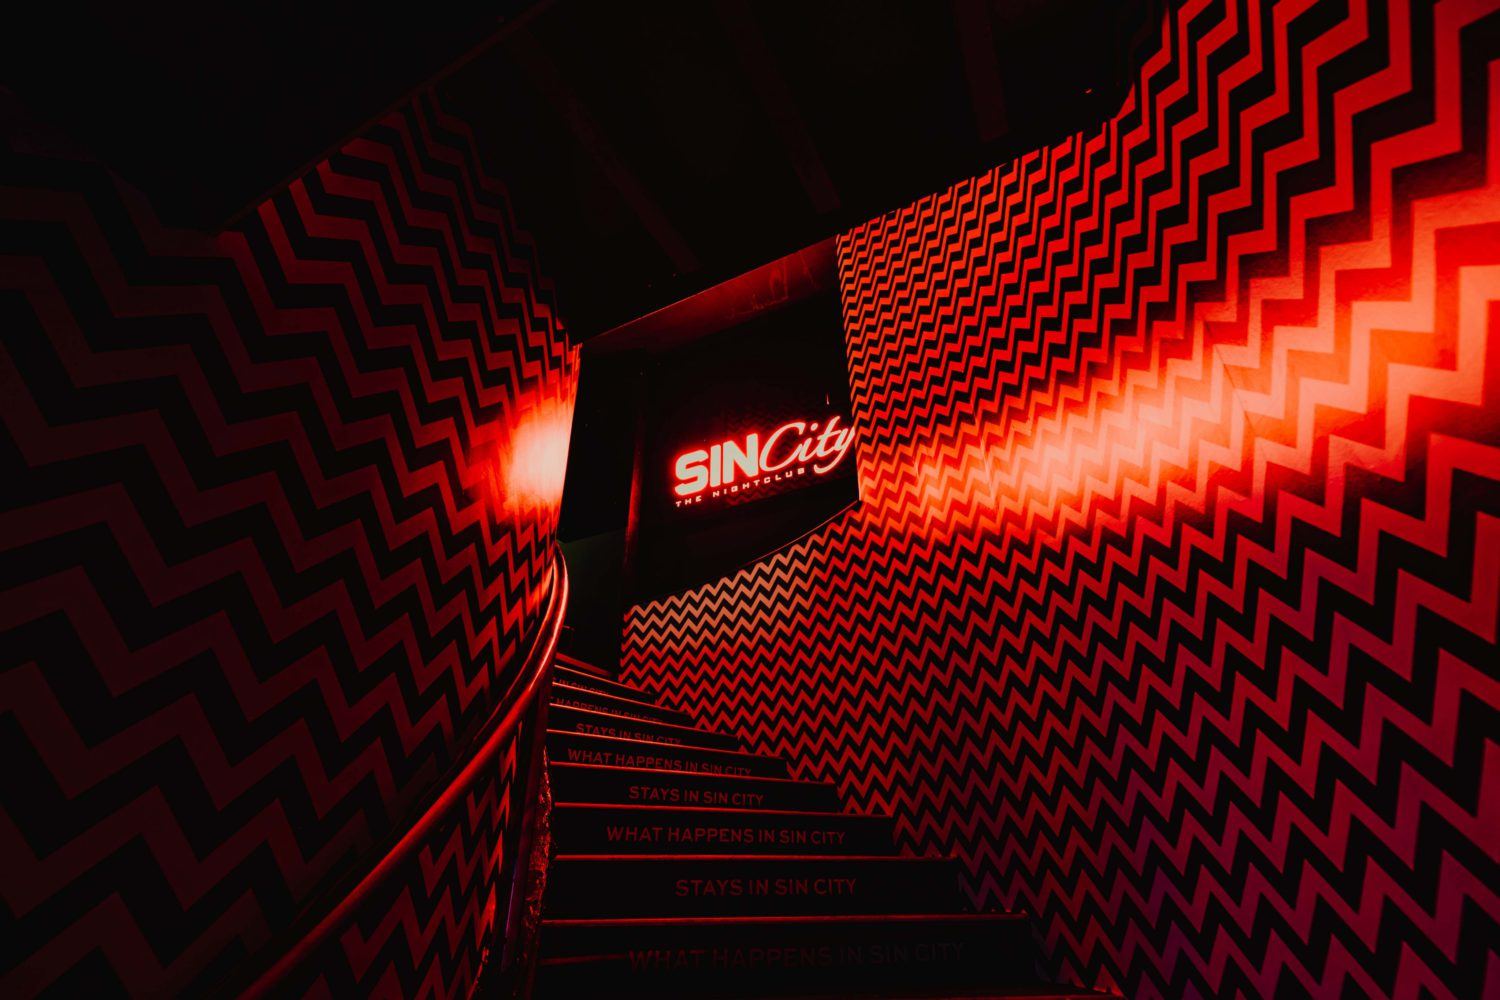 SinCity is back with a stunning new look and location